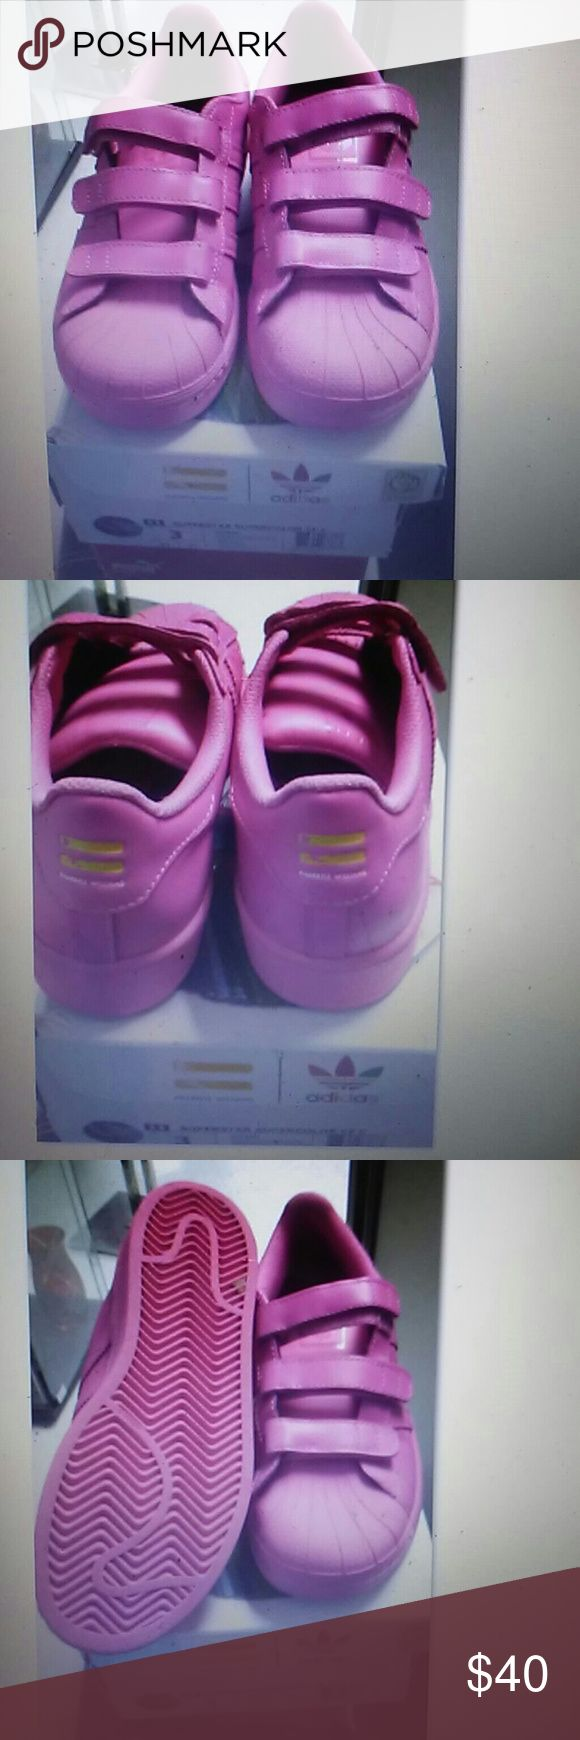 Adidas Pharrell Williams Like New Shoes Sneakers